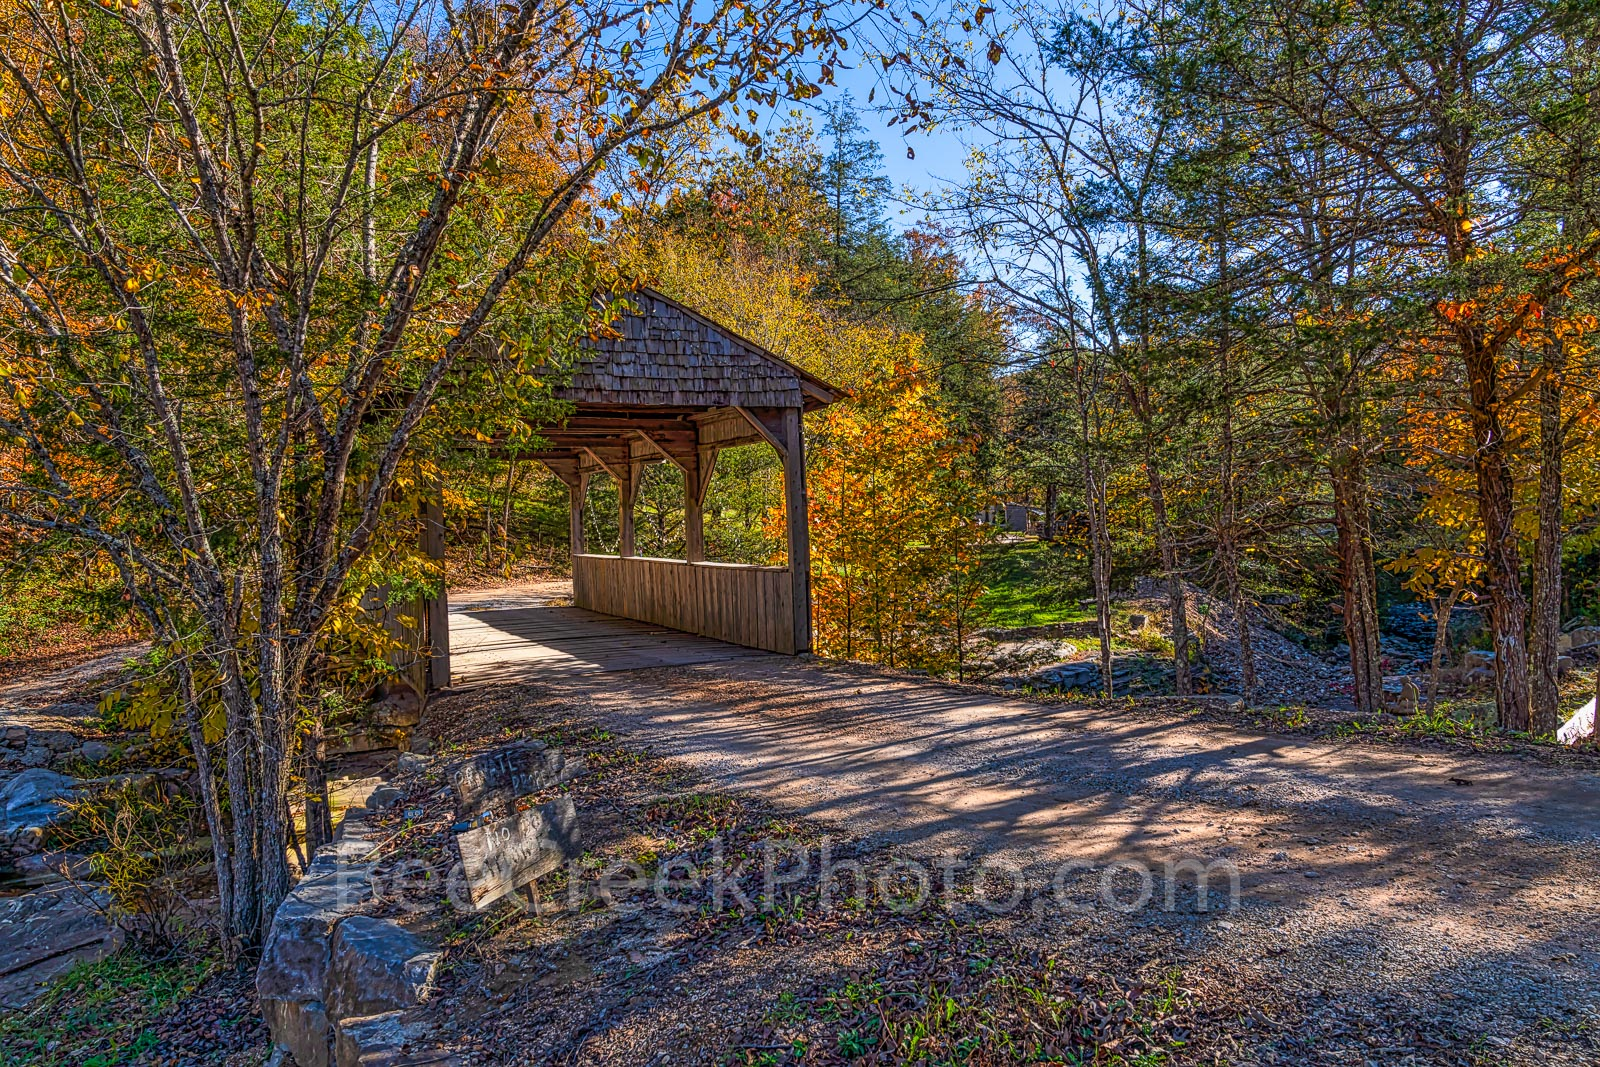 Ozark, covered bridge, fall, autumn, scenic, scenery, rural, scene, arkansas, October, bridge, buffalo river, Ozarks National Forest, maples, orange, green, water,